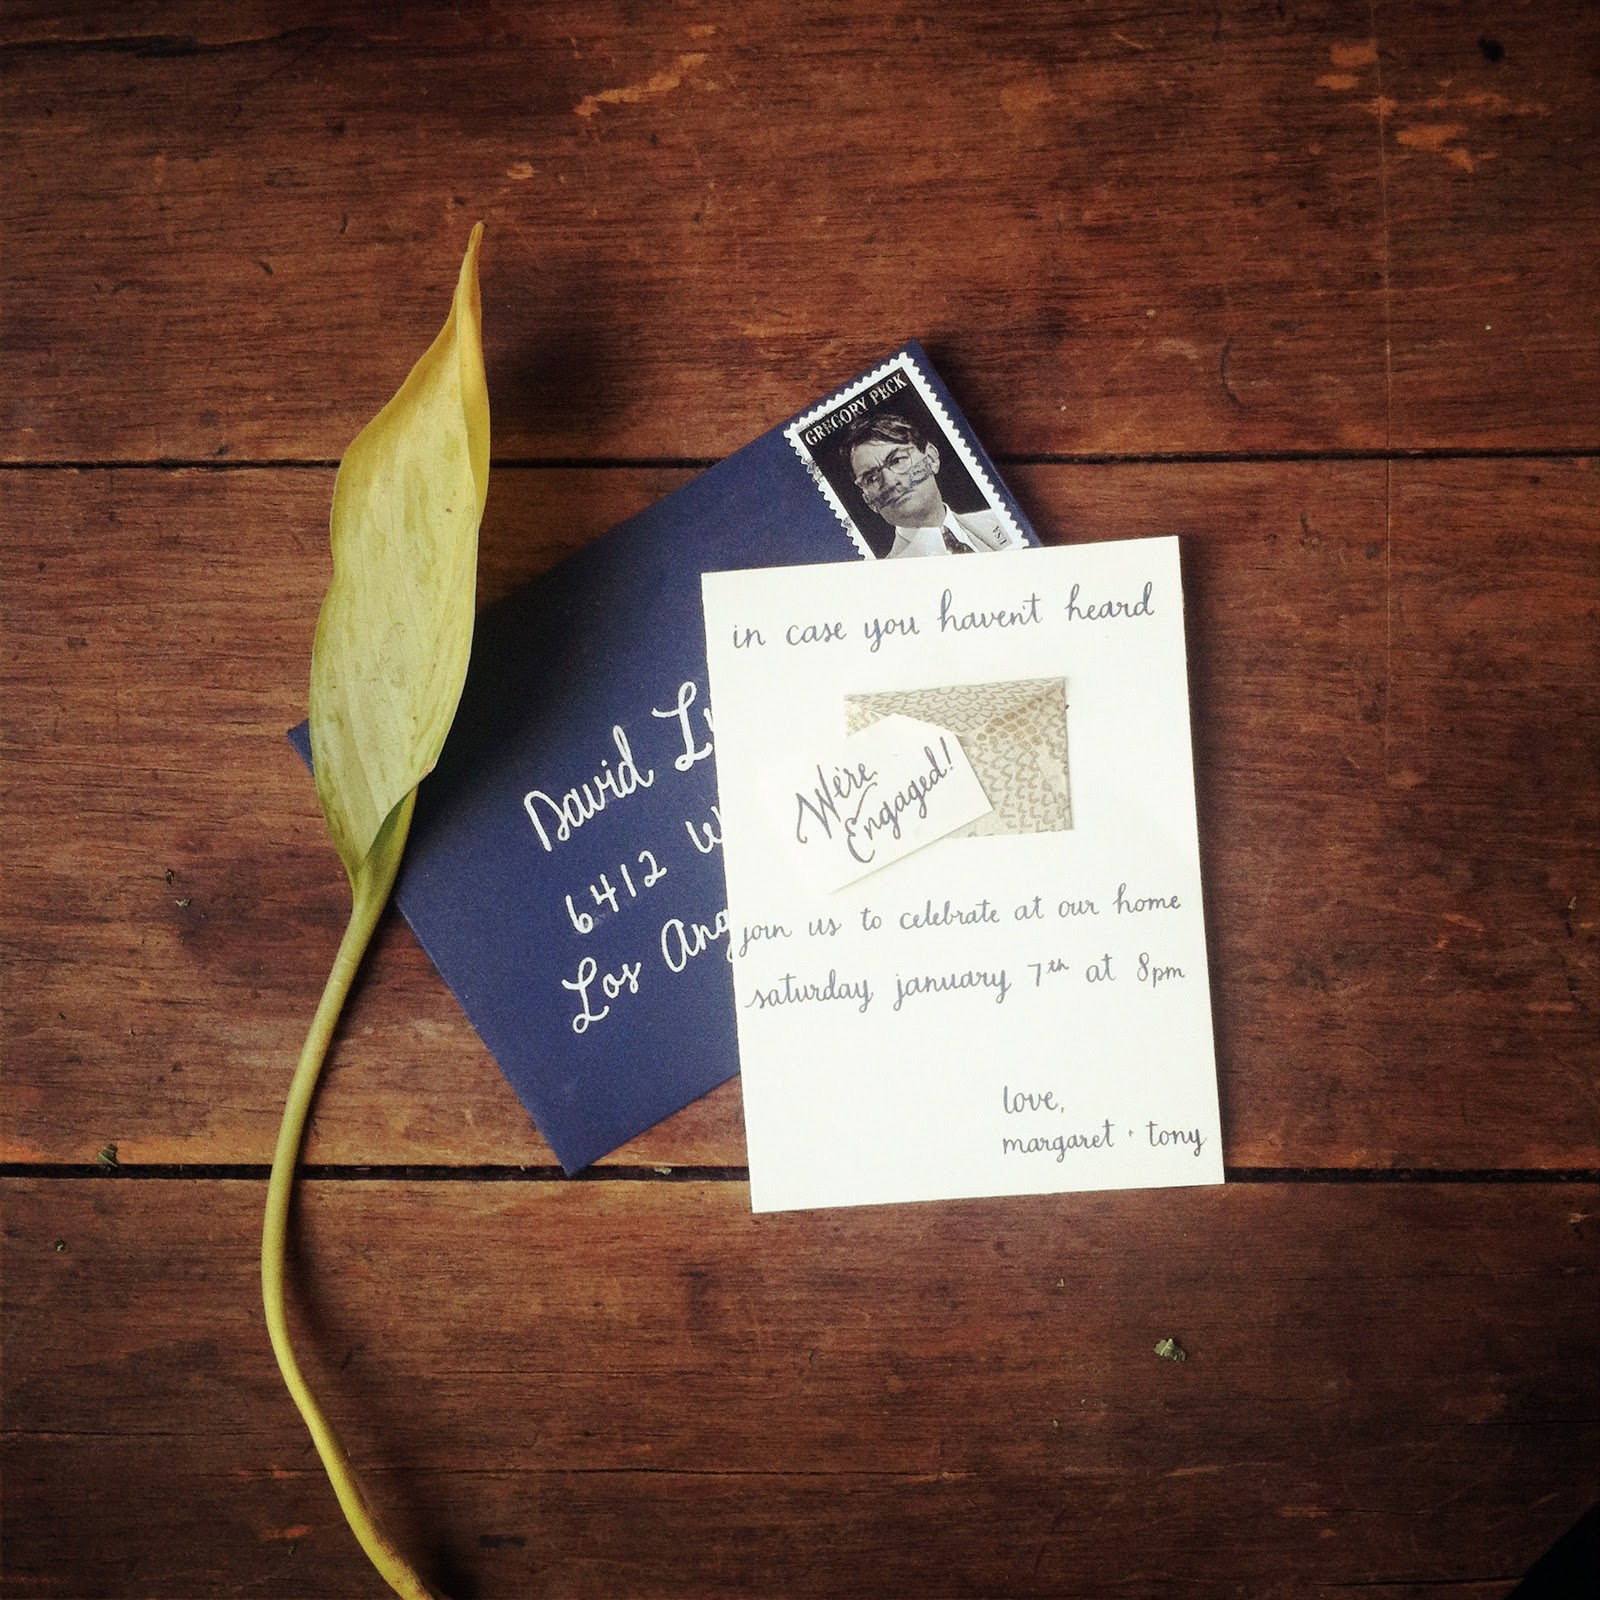 paper pastries: Wedding talk No. 2 (engagement party invitations)